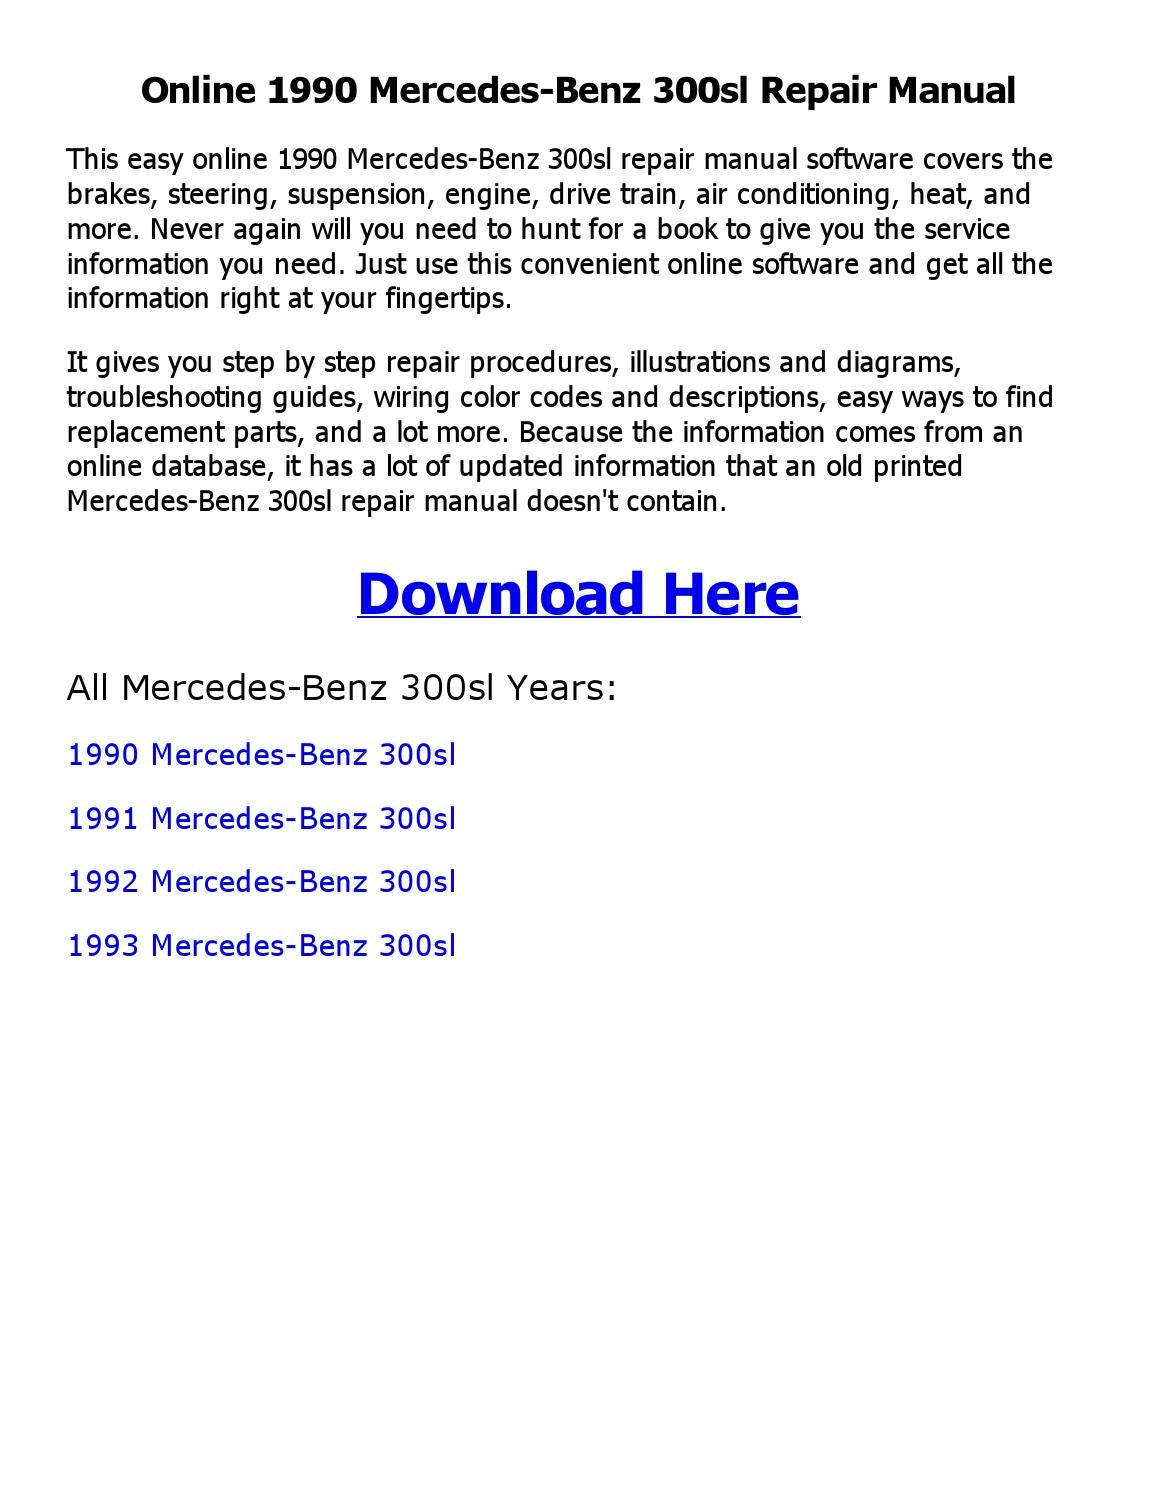 hight resolution of 1990 mercedes benz 300sl repair manual online